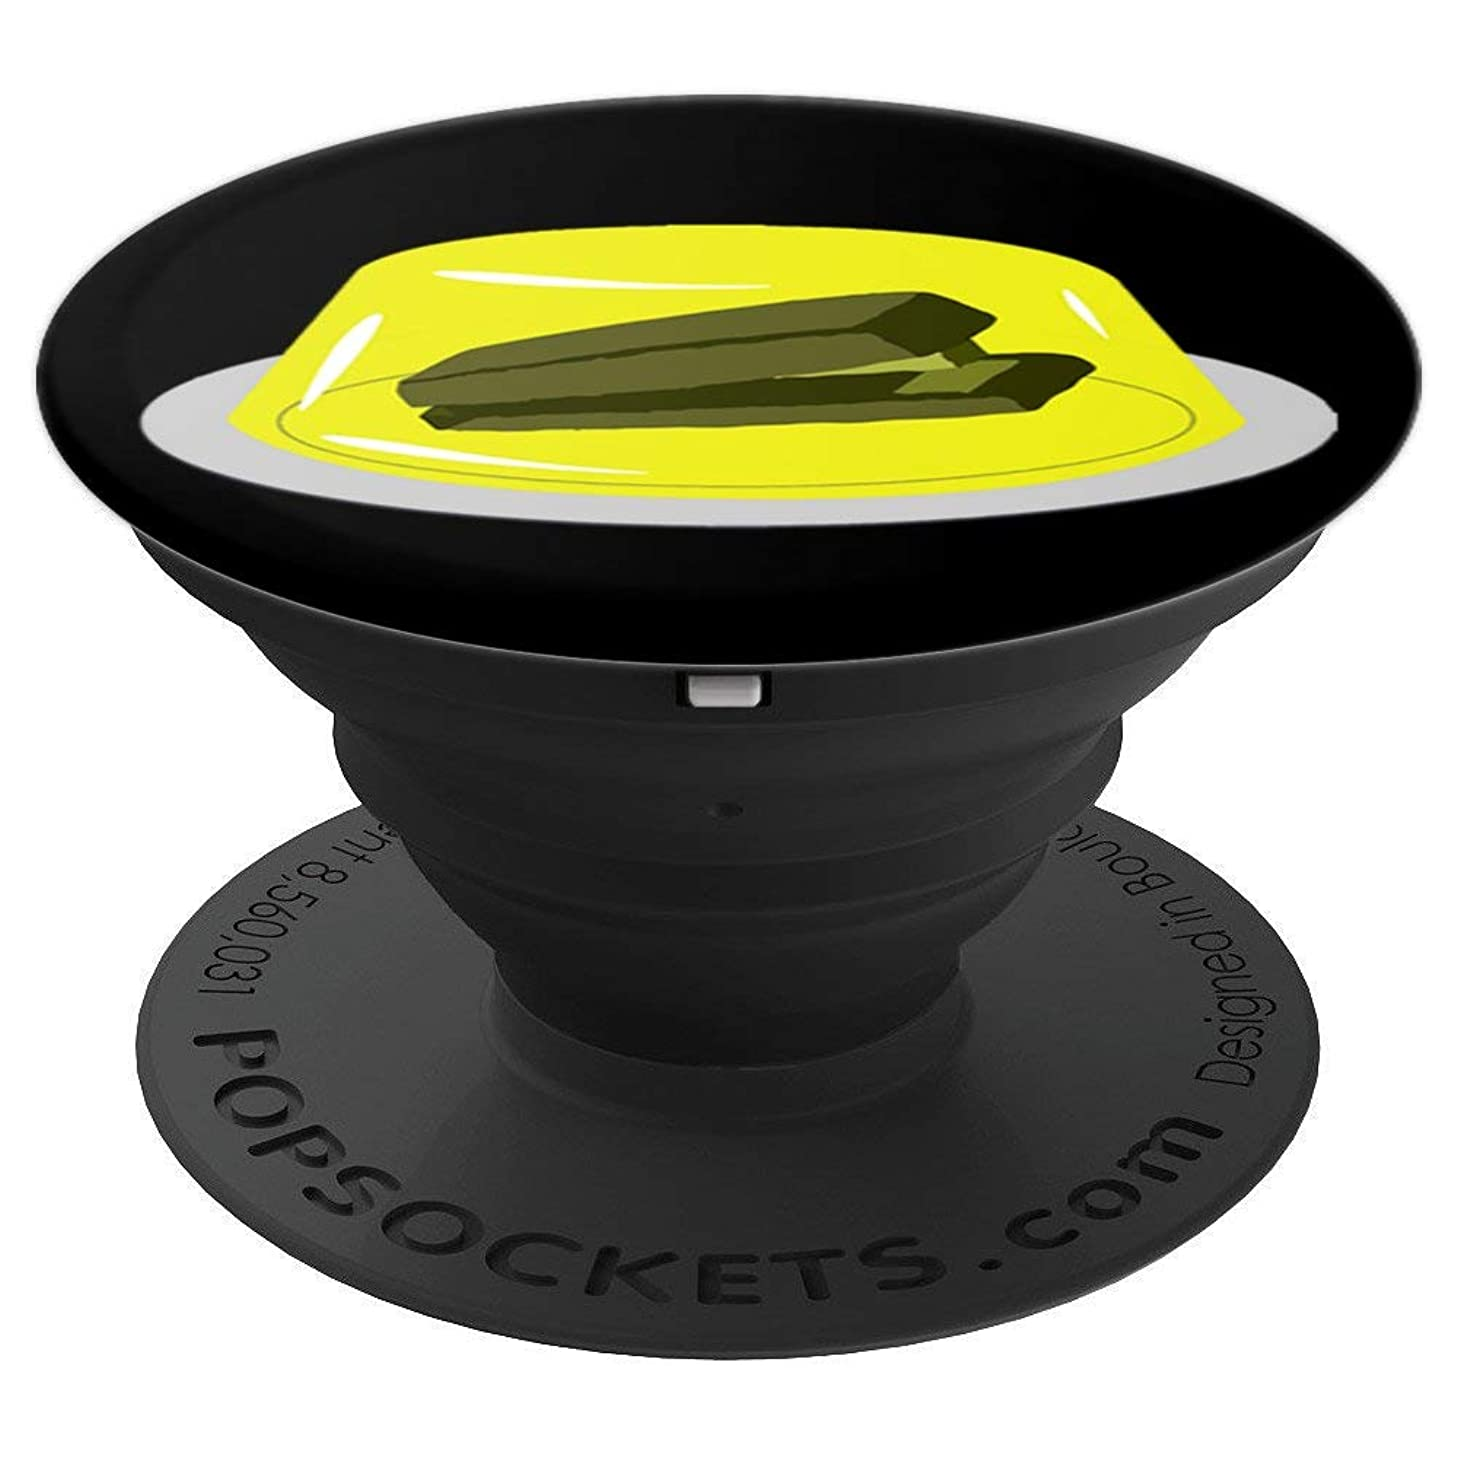 Stapler In Jello, Original Design - PopSockets Grip and Stand for Phones and Tablets